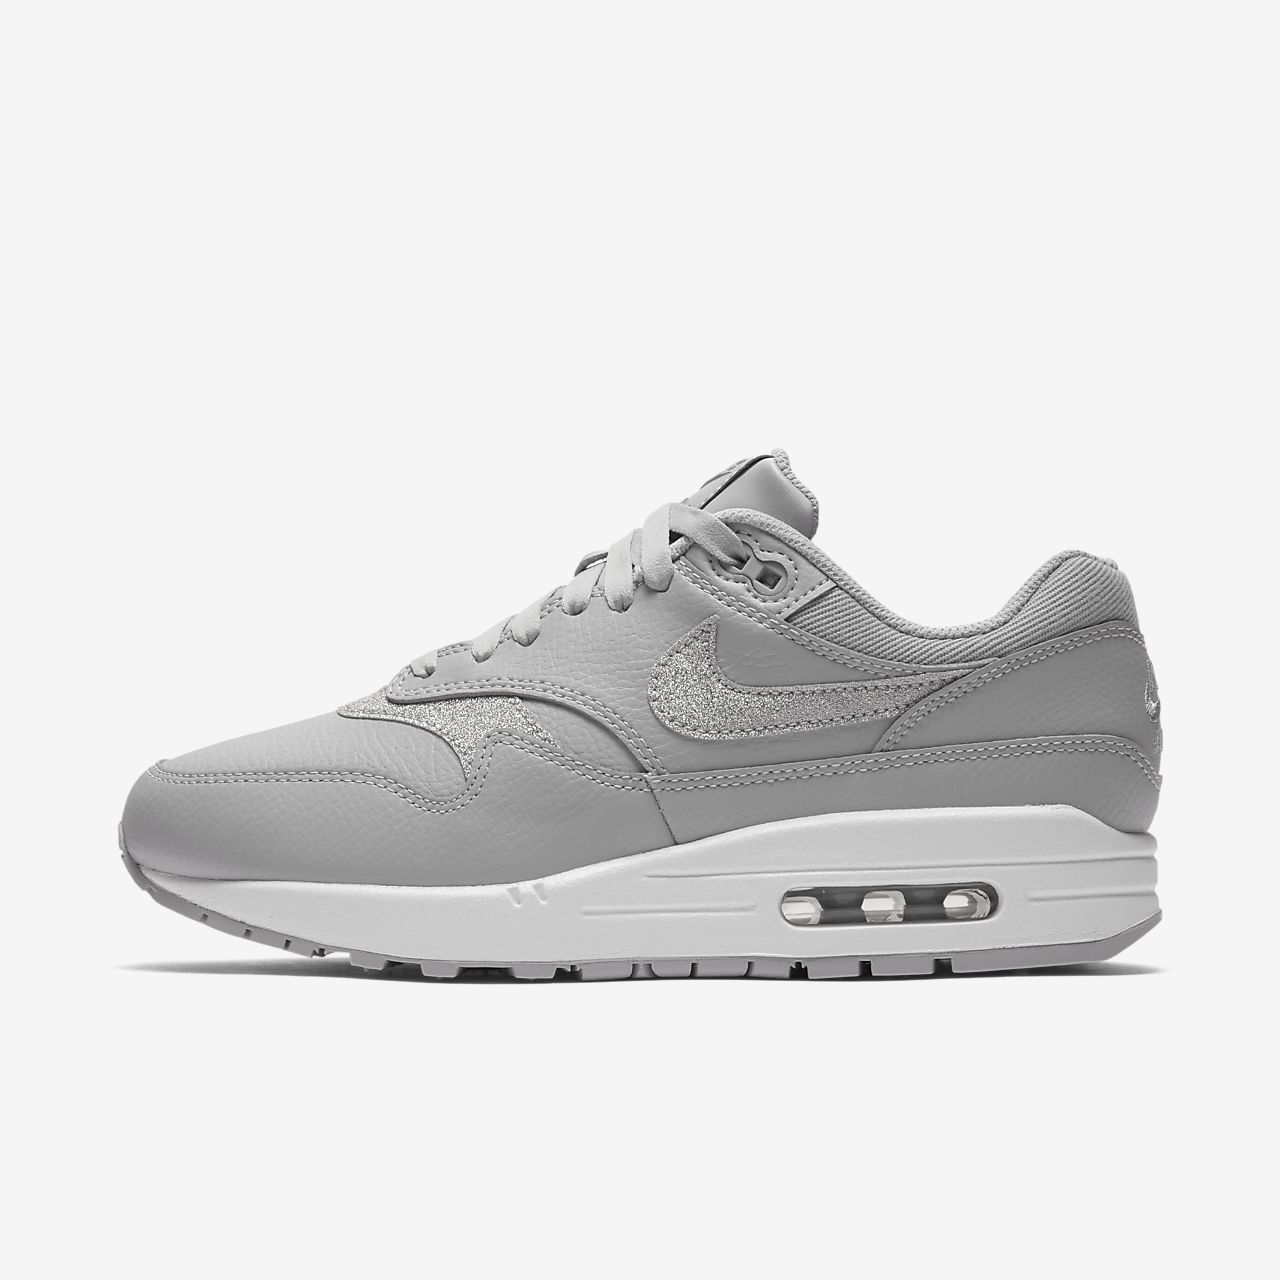 photos officielles 4a1ec a0491 promo code for nike air max noir glitter eb573 89ae4